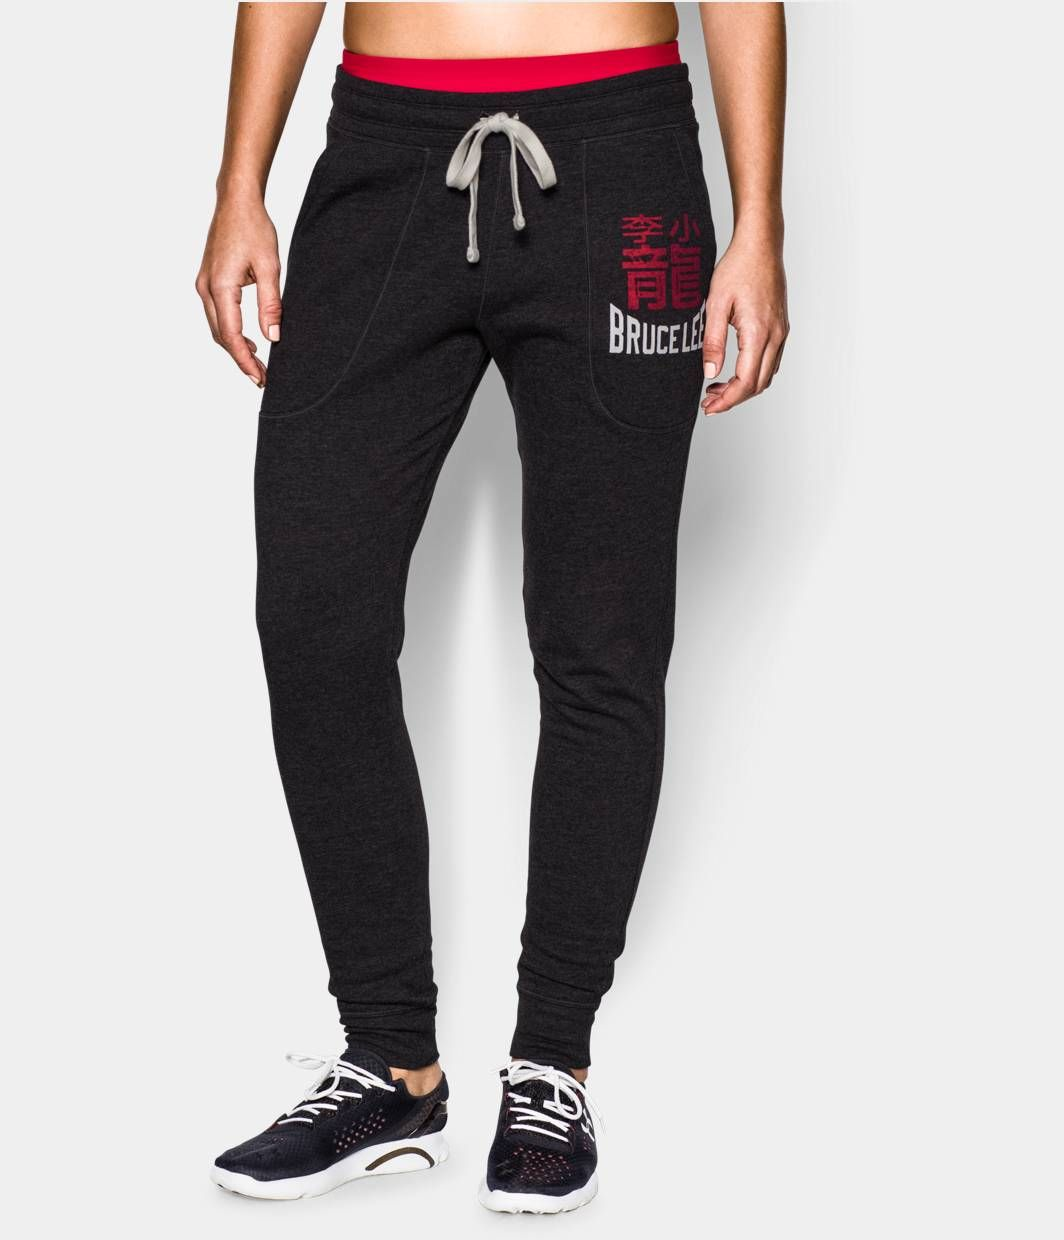 4fcc05862a Women's Roots Of Fight Bruce Lee Fleece Gym Pant | Under Armour US ...